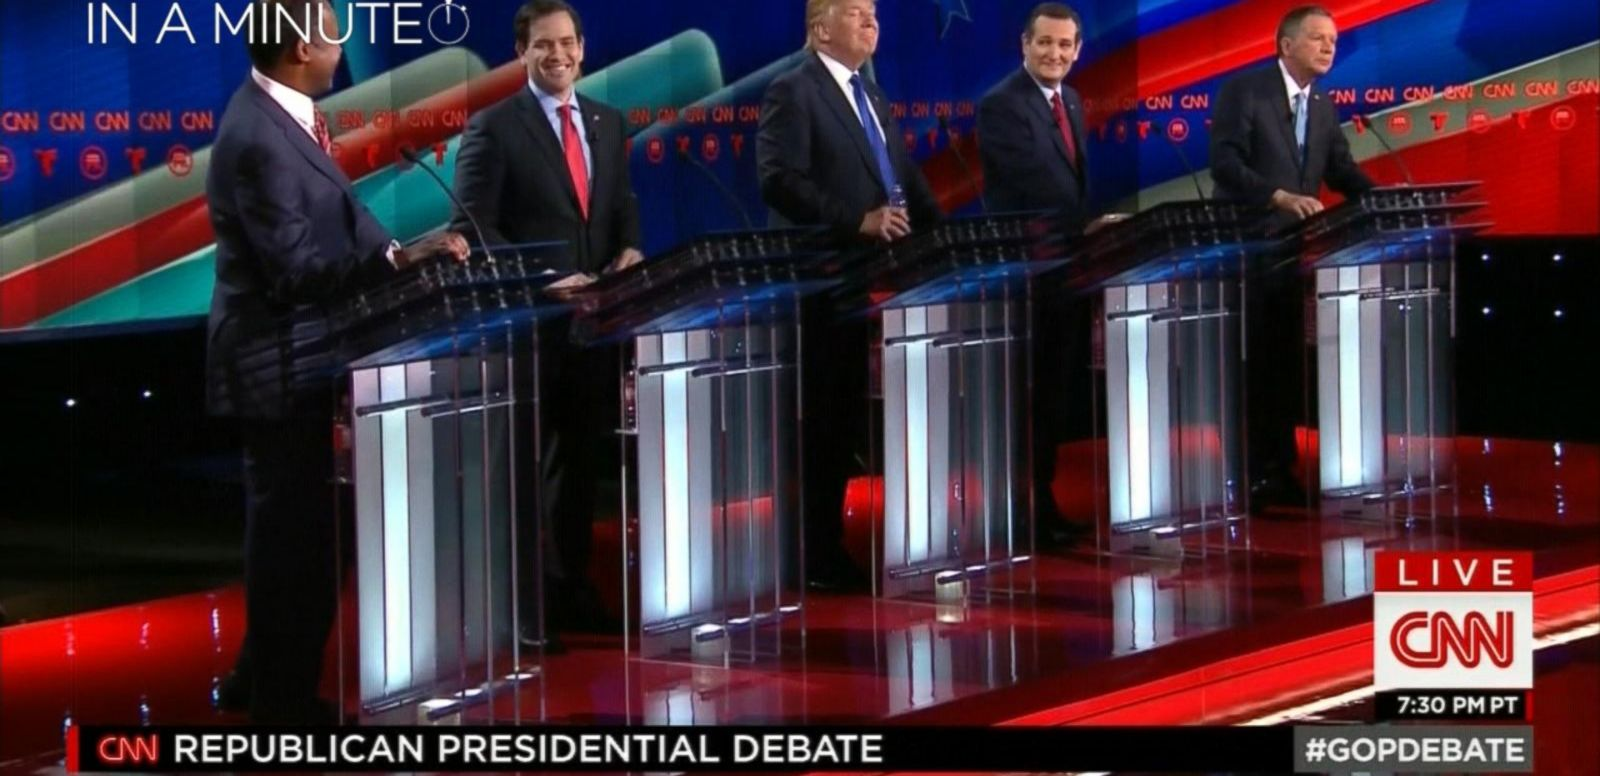 VIDEO: Tenth Republican Presidential Debate In A Minute